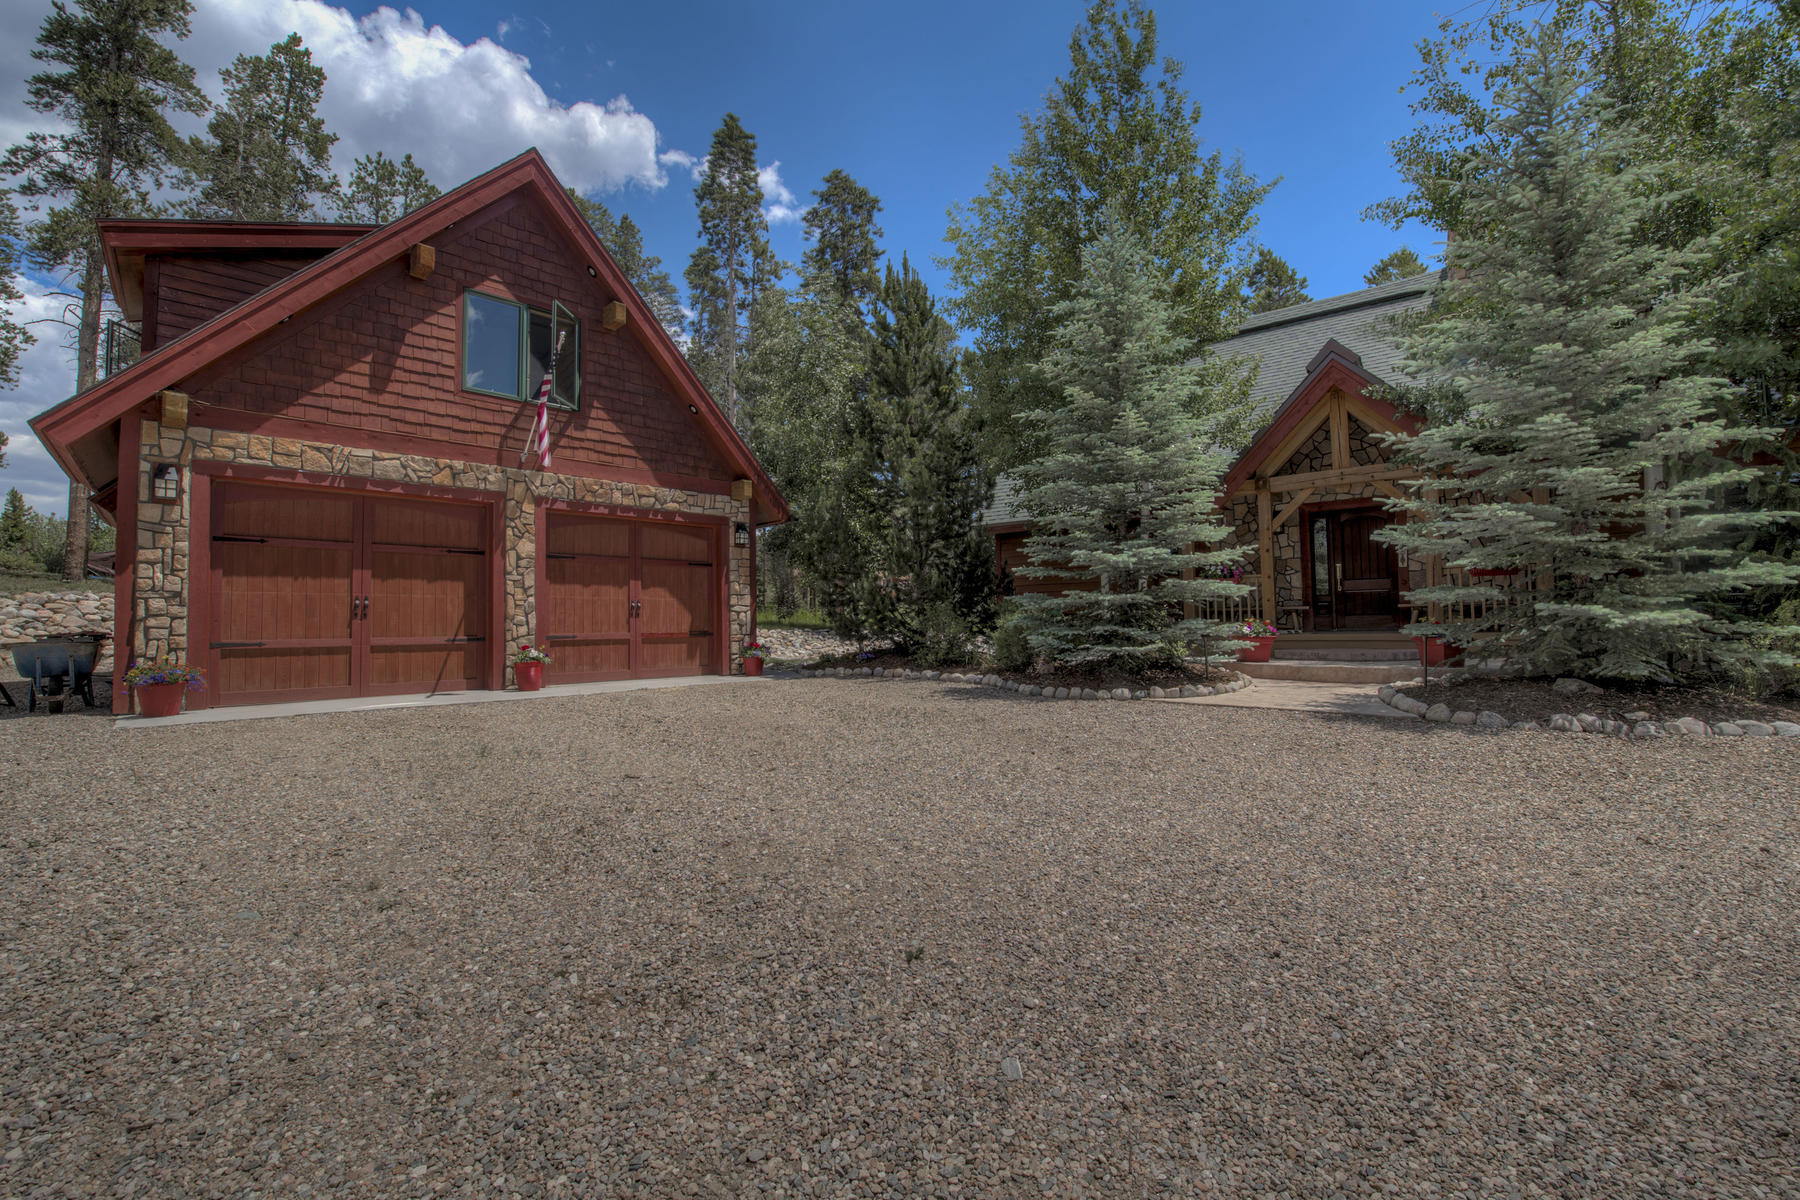 Single Family Homes for Sale at Beautiful Post & Beam Home 1066 GCR 642, Grand Lake, Colorado 80447 United States